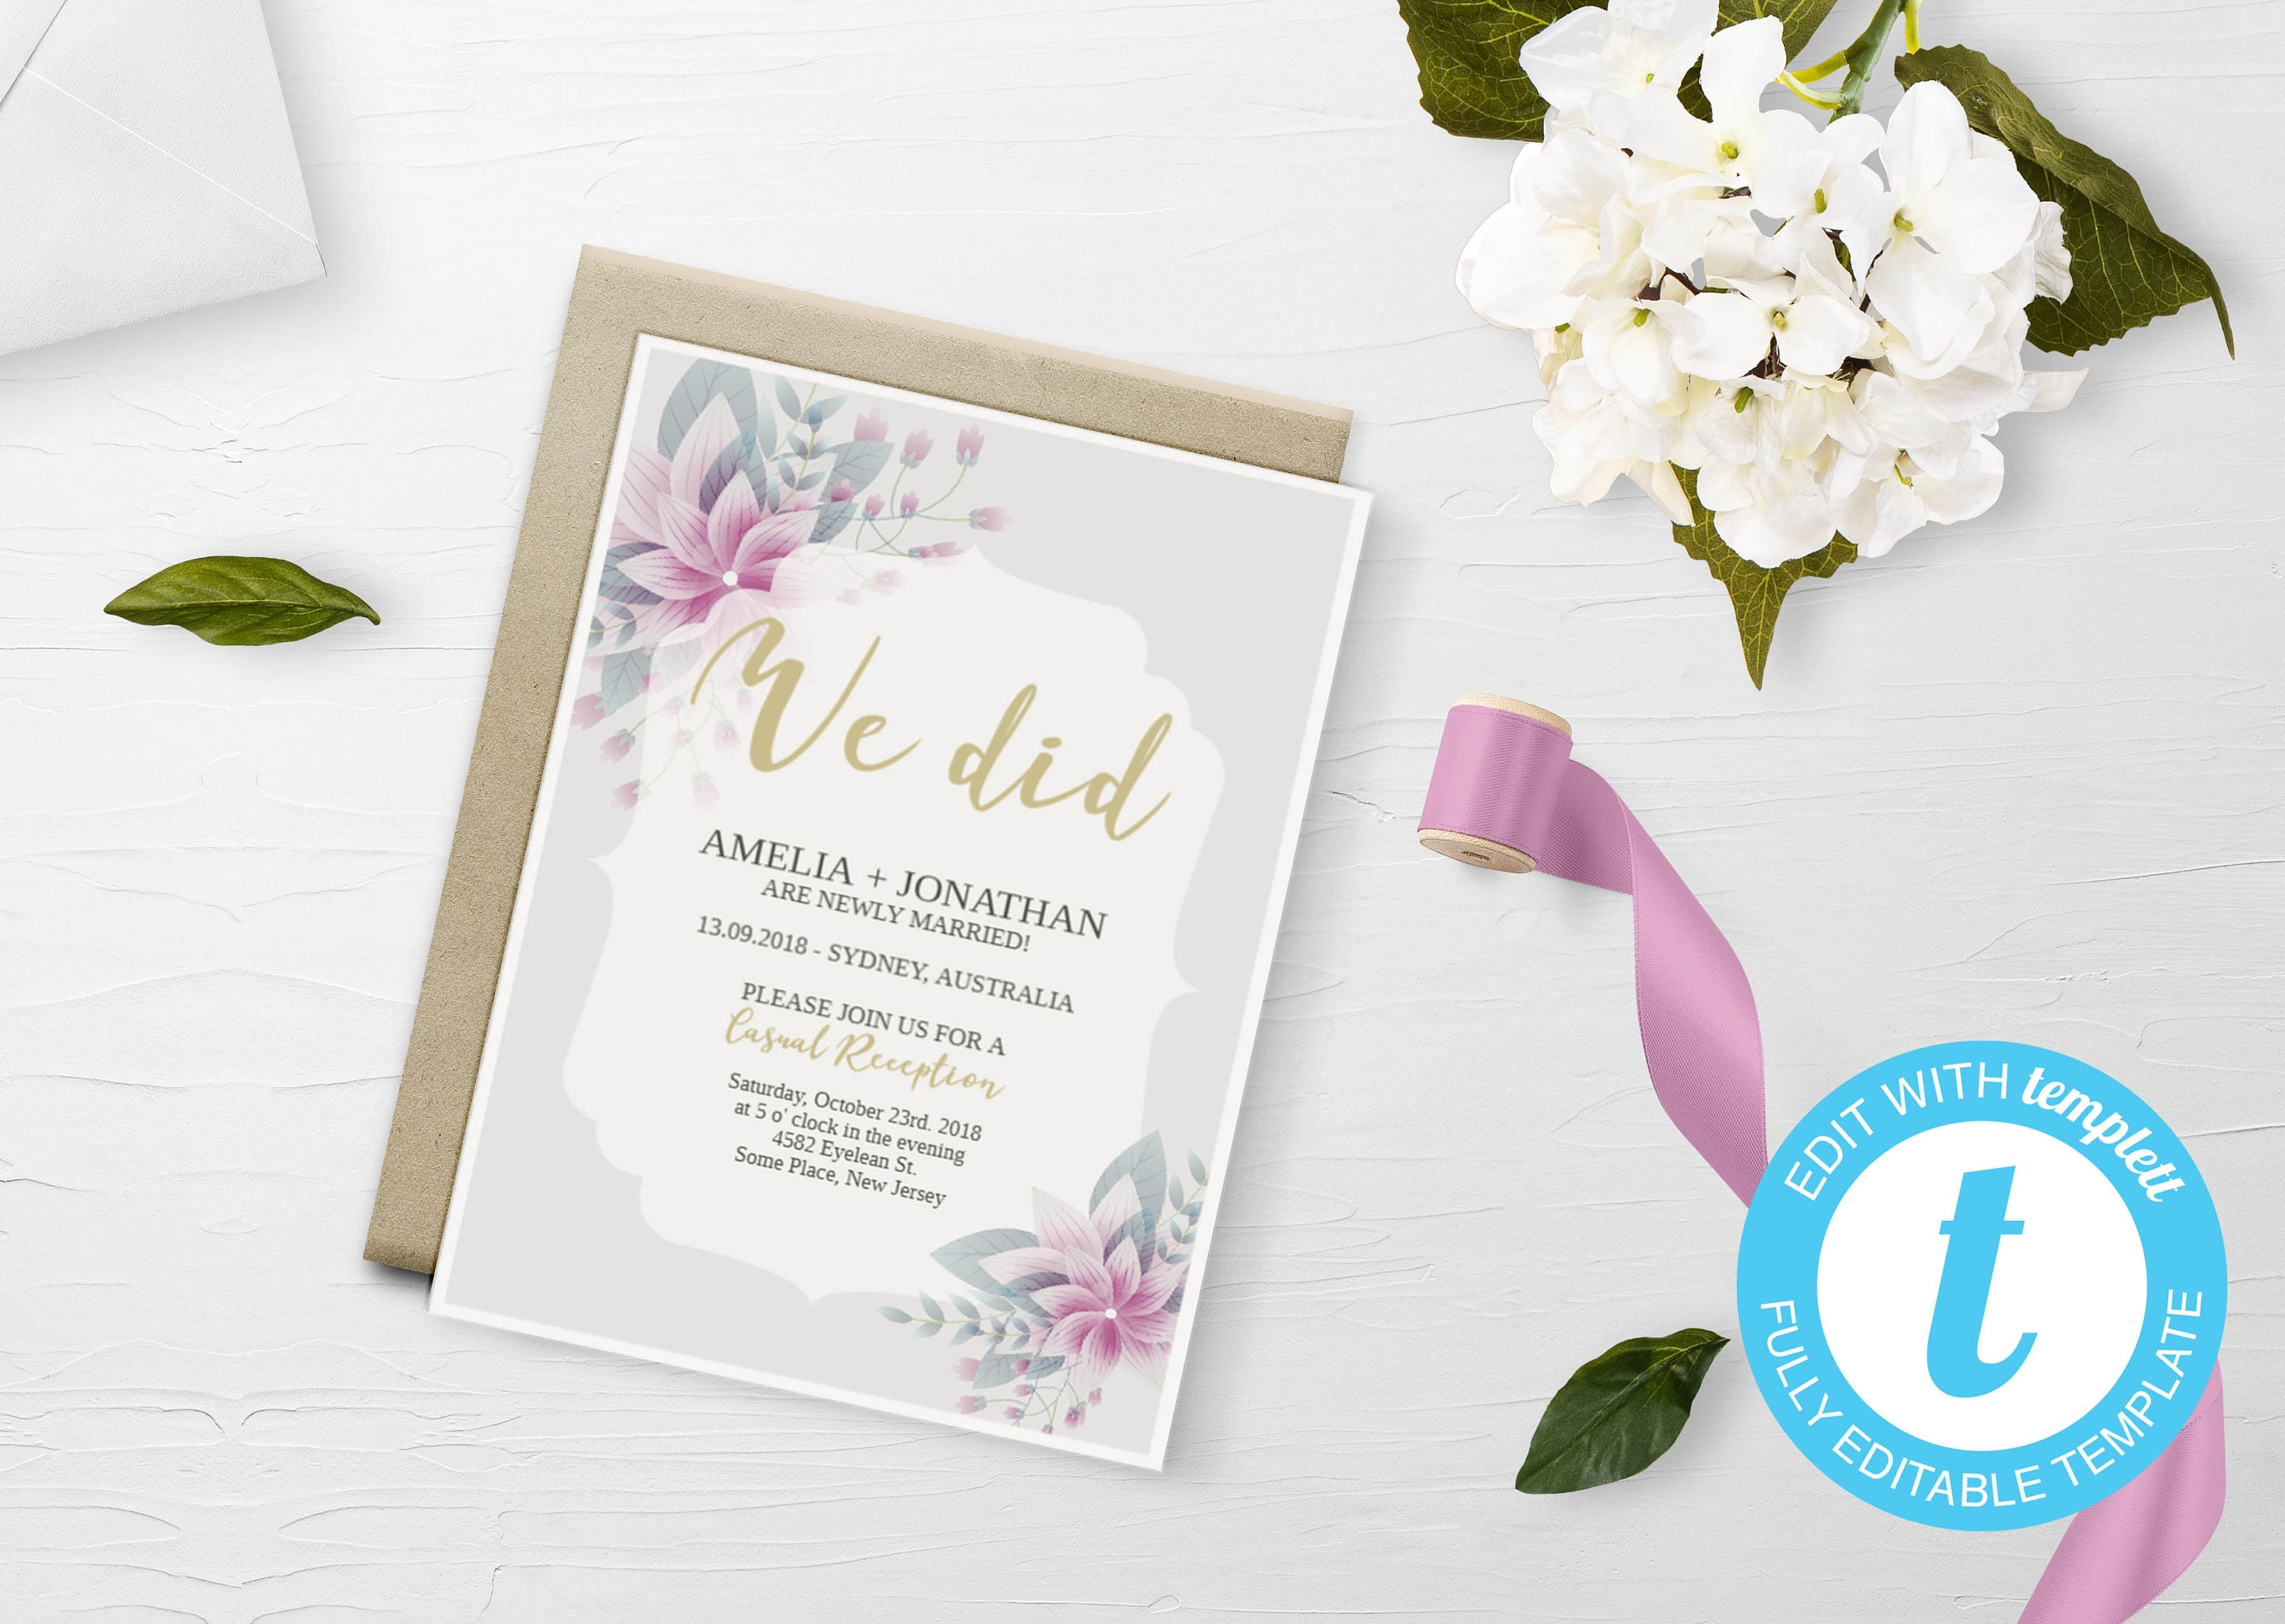 Elopement Invitation We Eloped Eloped Announcement Eloped Etsy